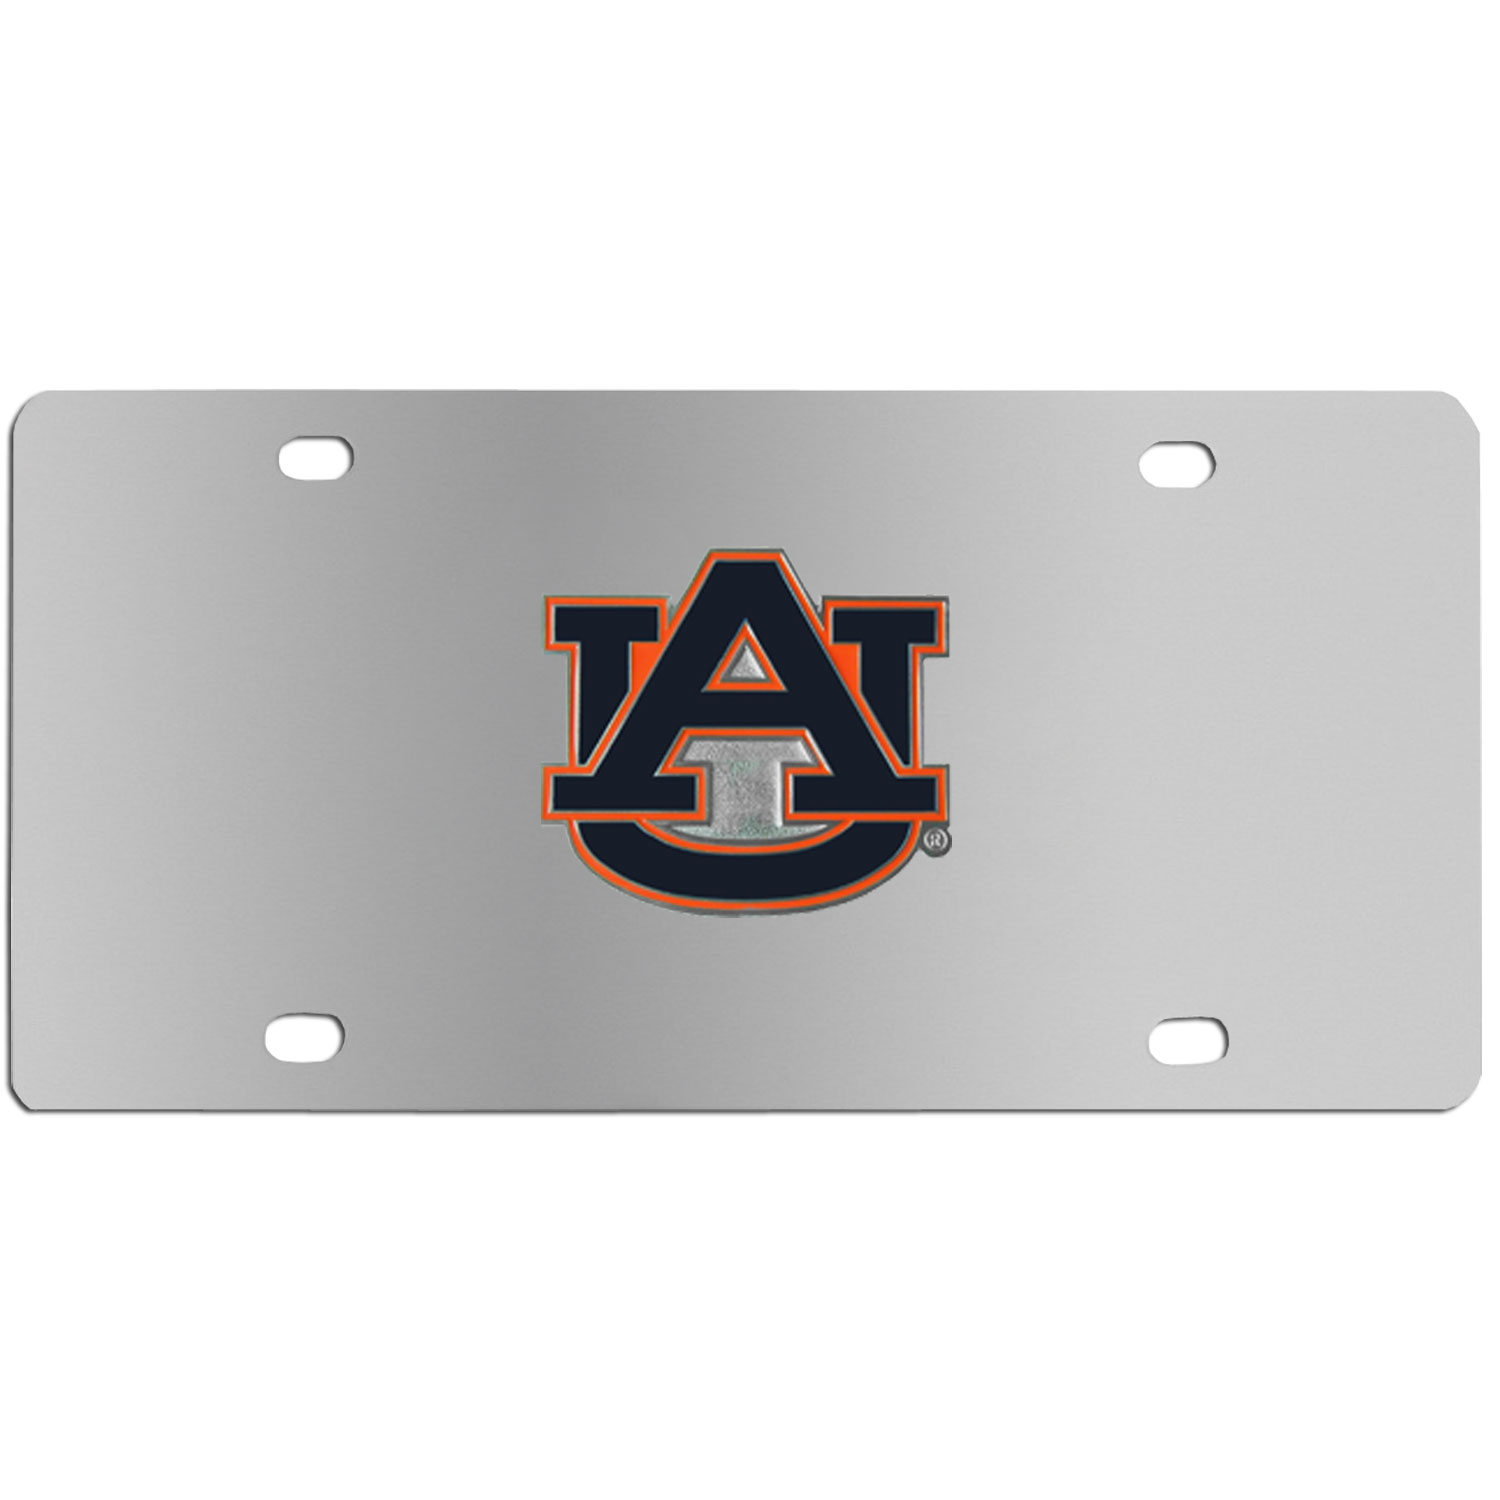 Auburn Tigers Steel License Plate - Show your team spirit with our stainless steel logo plates. Each plate features a carved and enameled Auburn Tigers emblem approximately 4 inches. Great for your vehicle or to hang on the wall in your home or office.